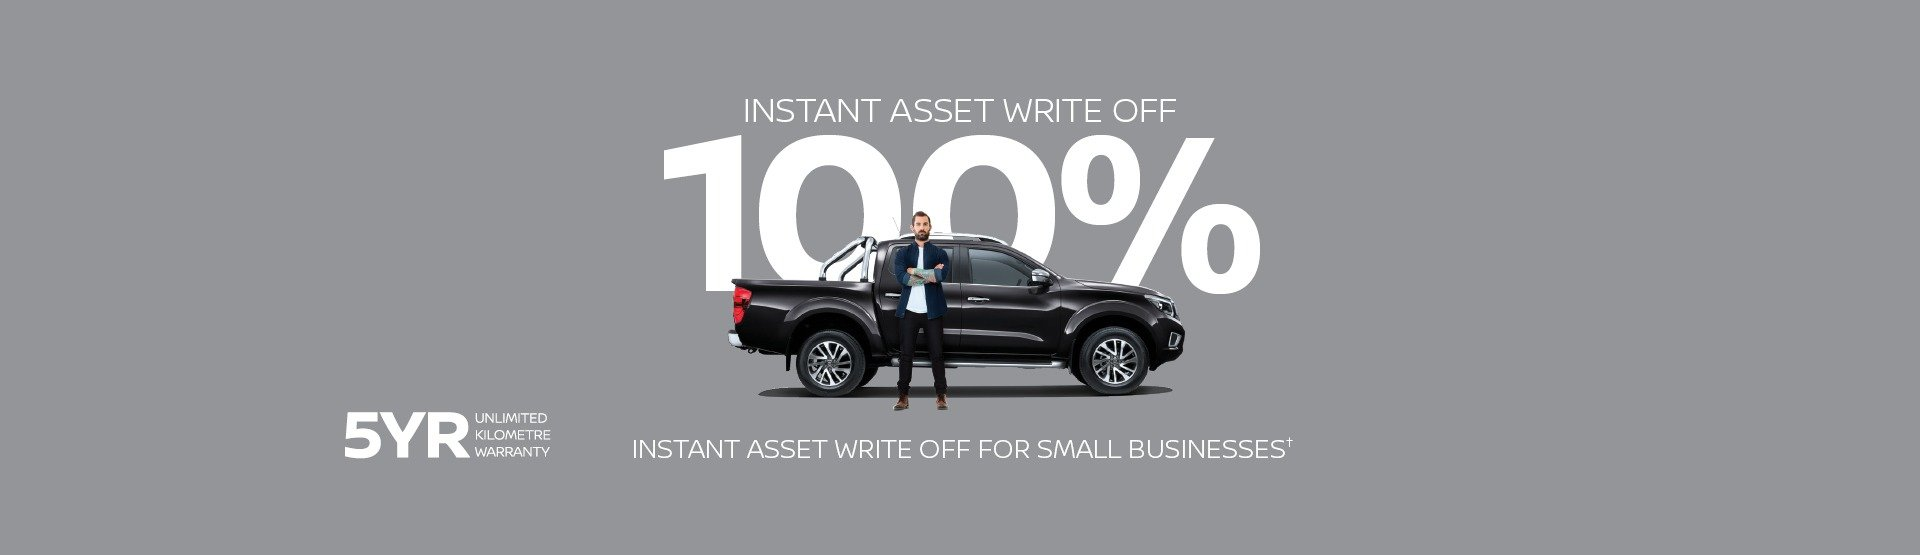 Instant asset write off Nissan